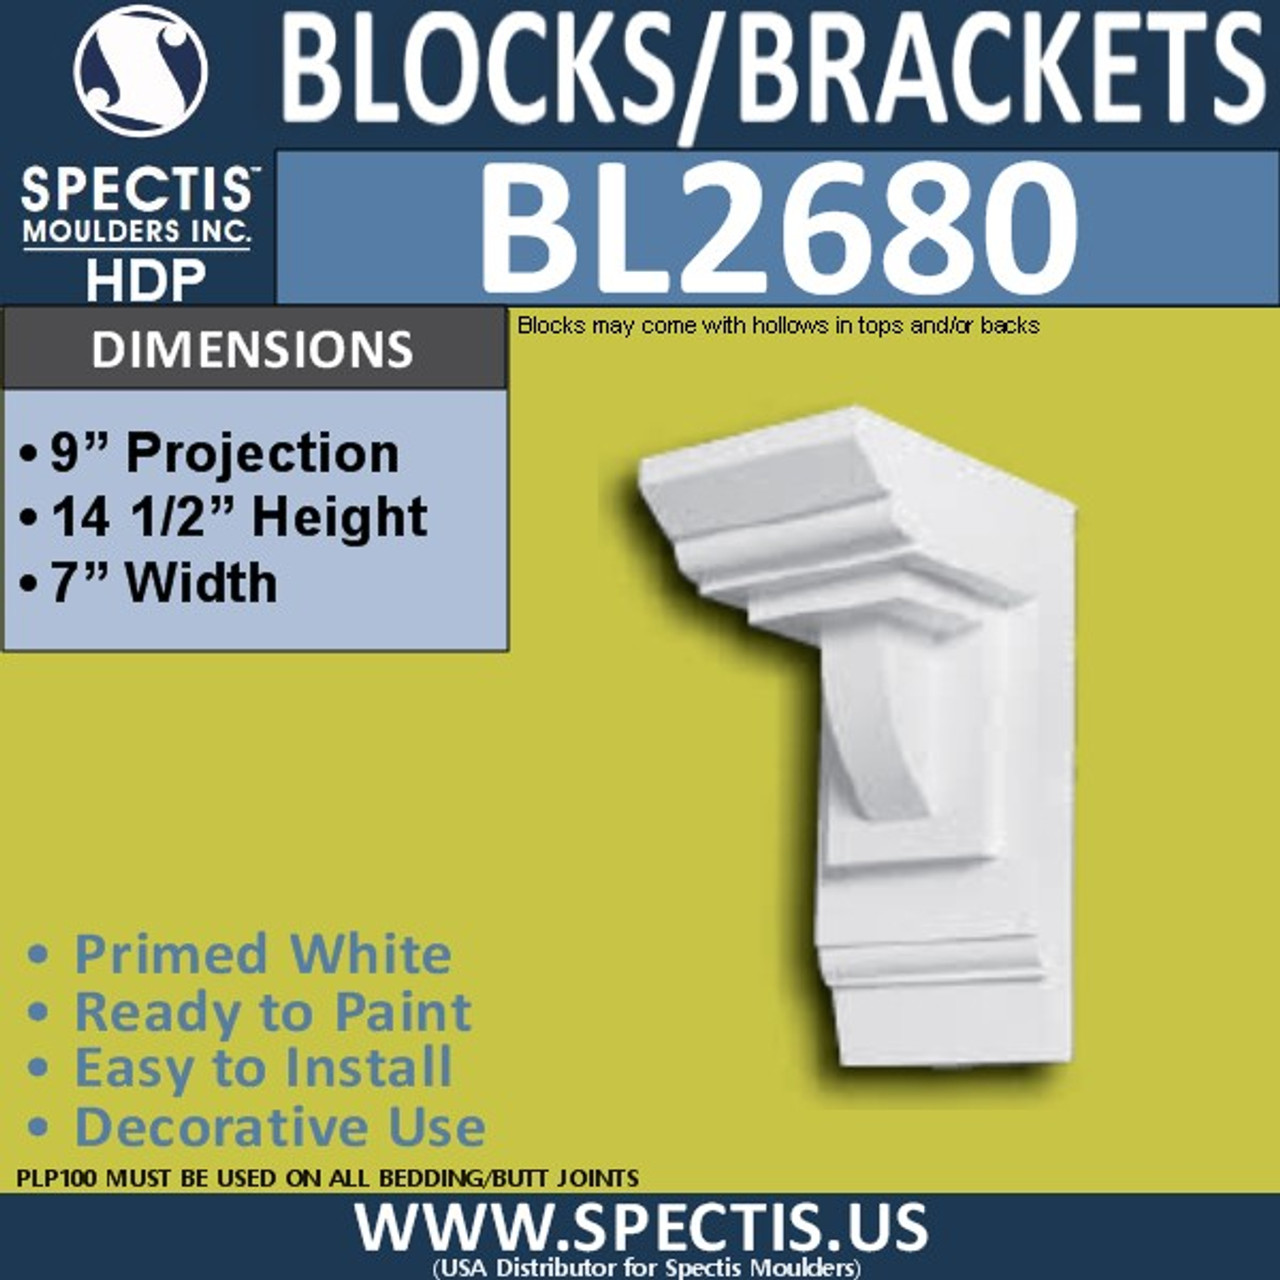 "BL2679 Eave Block or Bracket 8.1""W x 14.9""H x 7.9"" P"